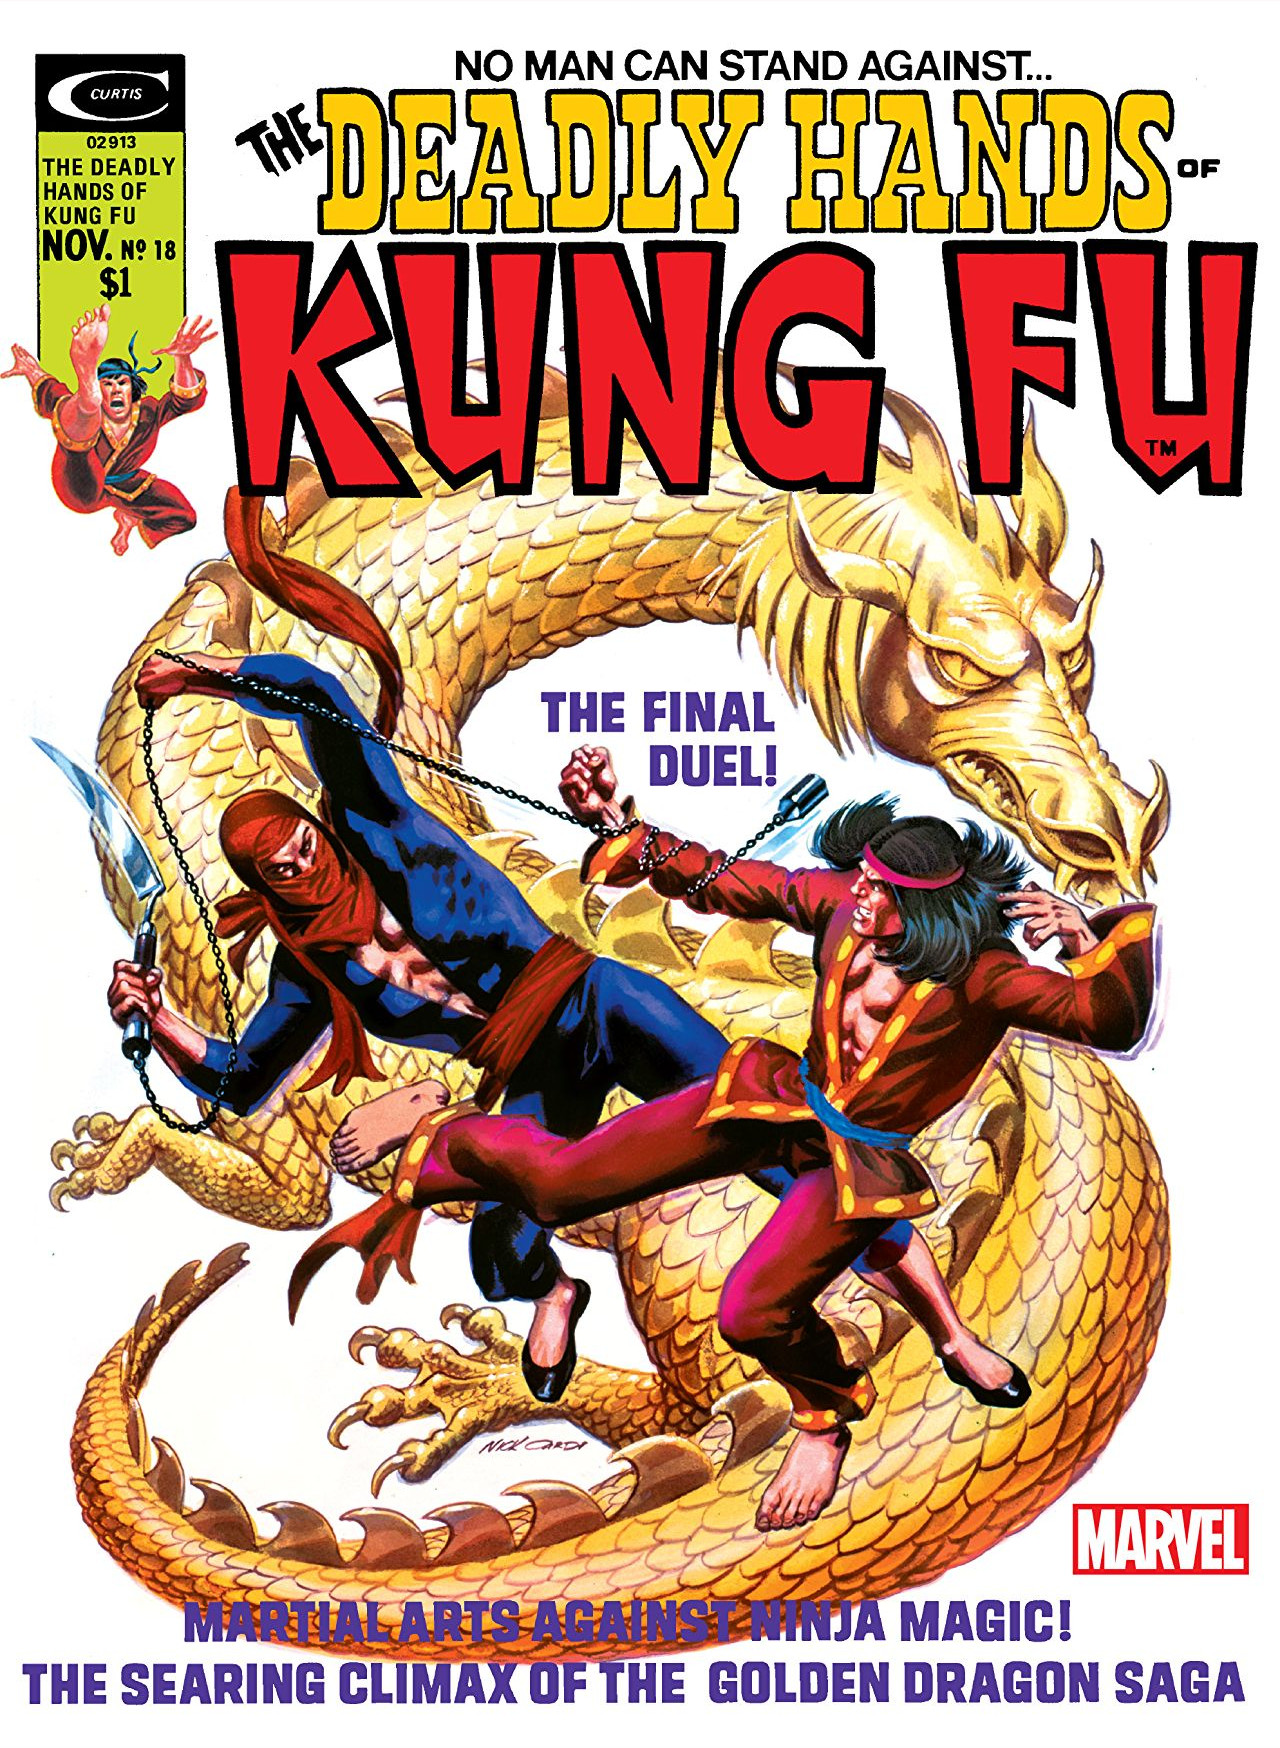 Cover di Deadly Hands of Kung Fu 18 del 1975, di Nick Cardy